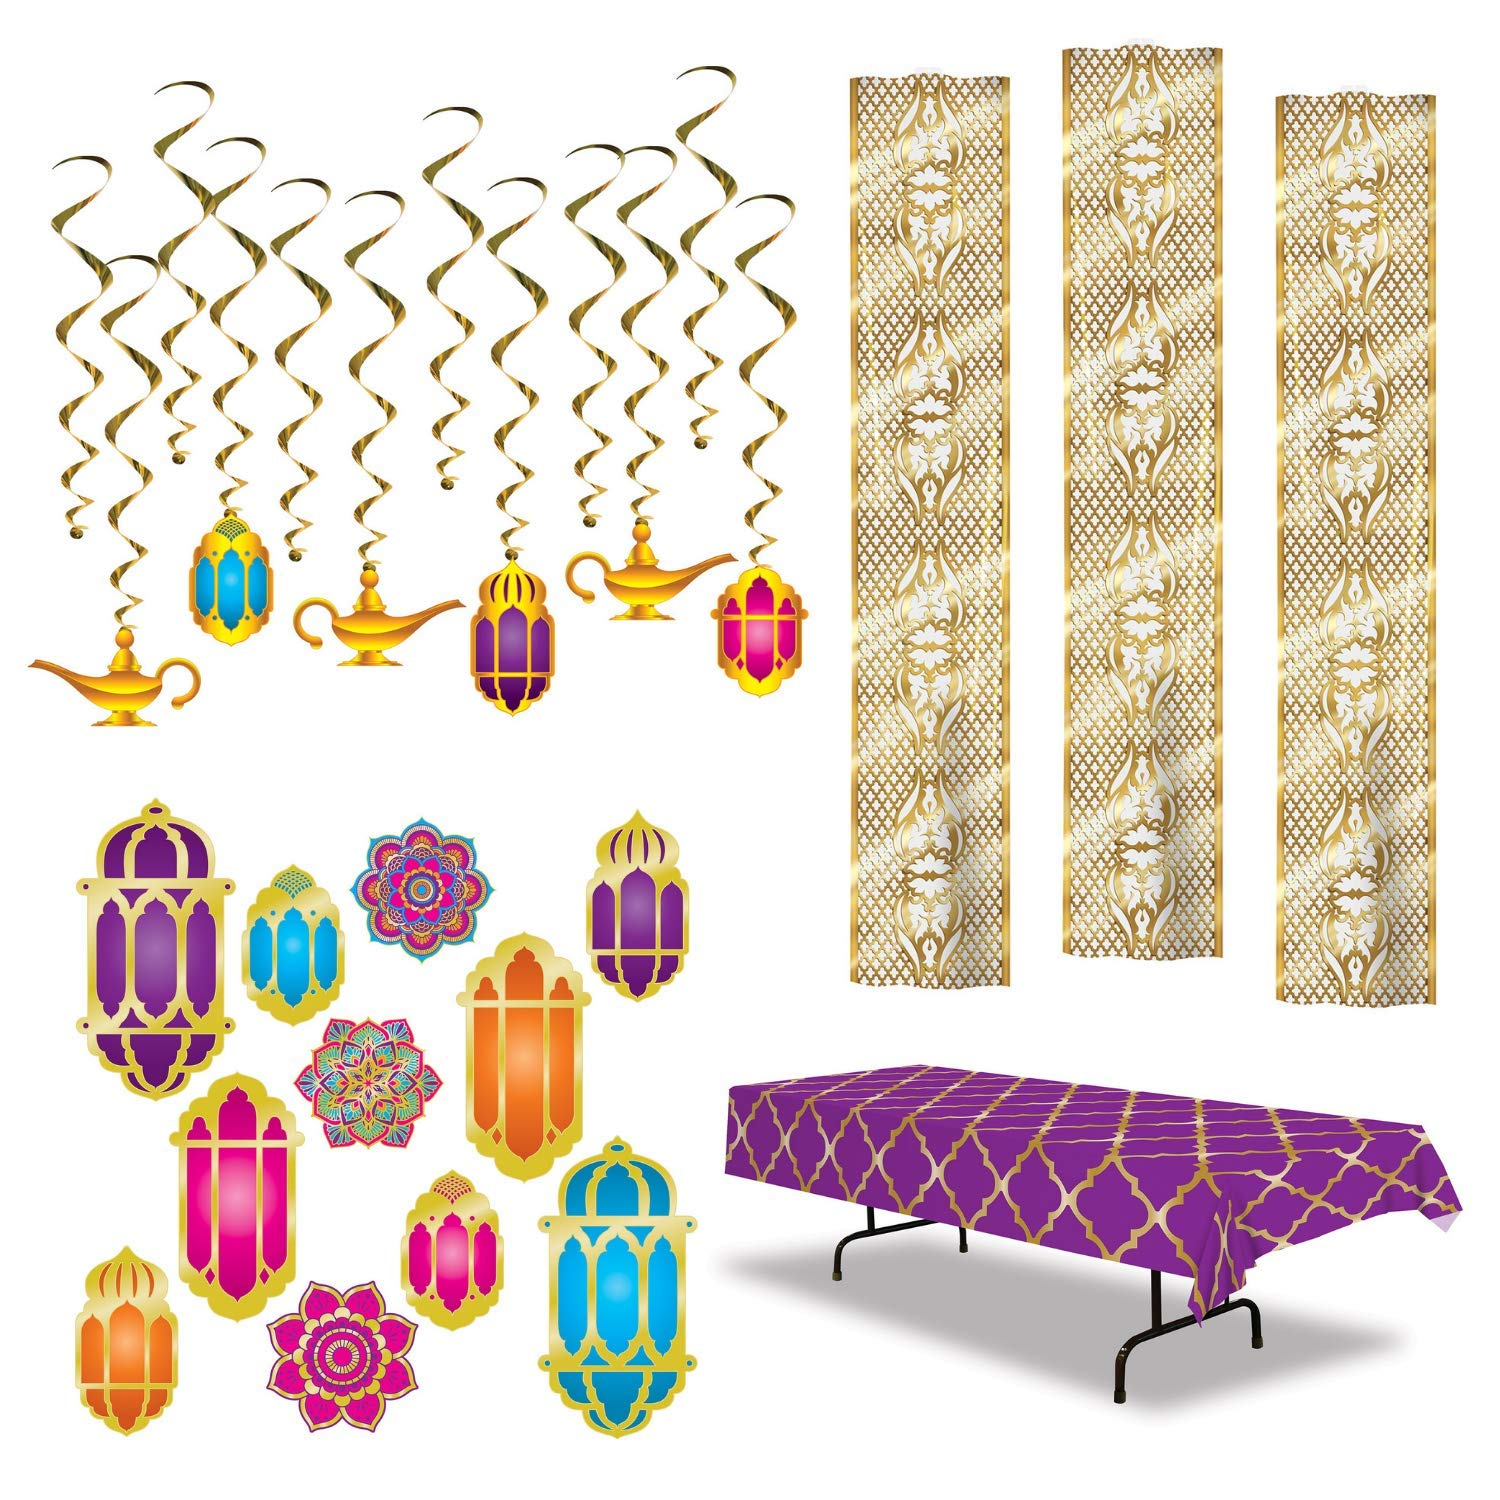 Arabian Nights Decorations - Magical Moroccan Inspired Party Decor (24 Pieces) by FAKKOS Design